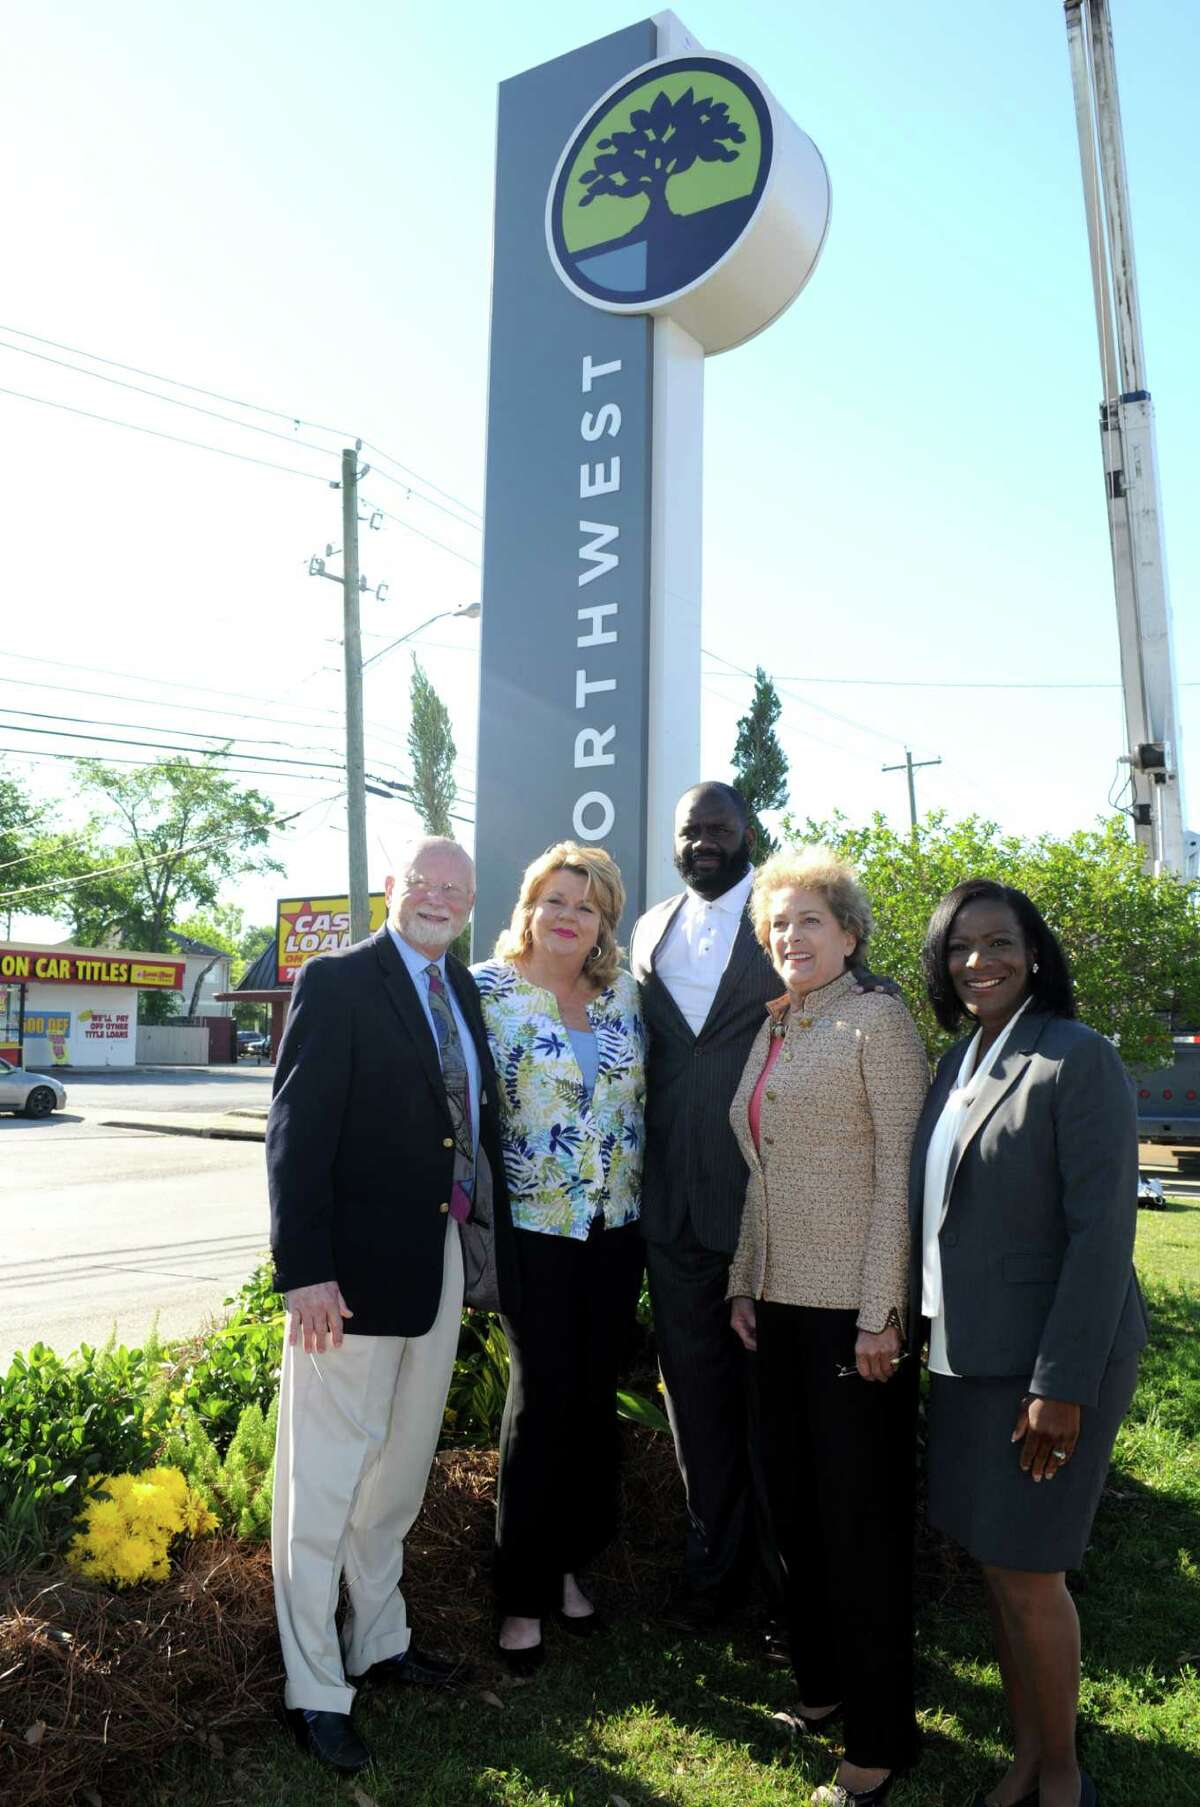 Northwest Management District Board President Wayne Norden, left, District A councilwoman Brenda Stardig, District B councilman Jerry Davis, District C councilwoman Ellen Cohen and NMD boardmember Marvalette Hunter gather at the base of the a sign for Northwest Management District rebranding project. unveiling.Northwest Management District Board President Wayne Norden, left, District A councilwoman Brenda Stardig, District B councilman Jerry Davis, District C councilwoman Ellen Cohen and NMD boardmember Marvalette Hunter gather at the base of the a sign for Northwest Management District rebranding project. unveiling.